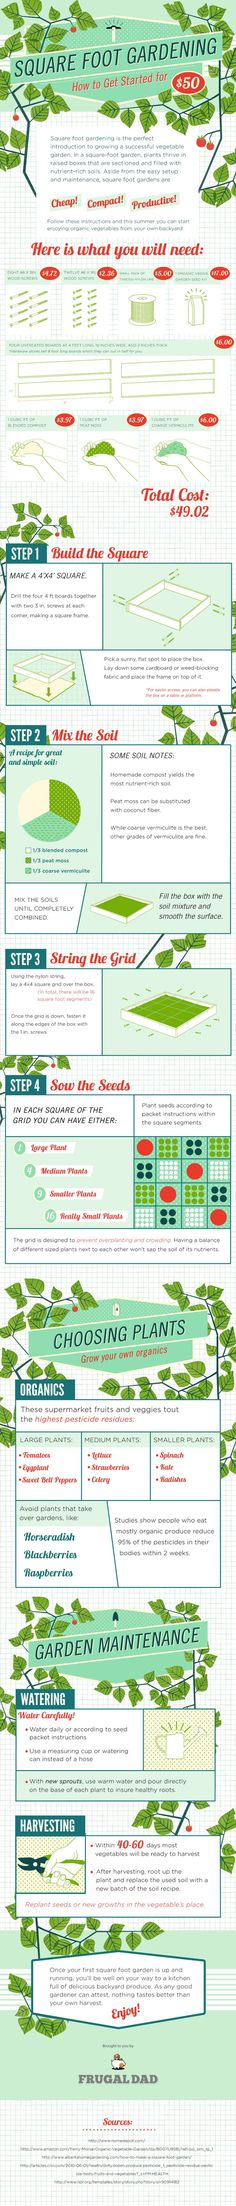 How to build a square foot garden infographic